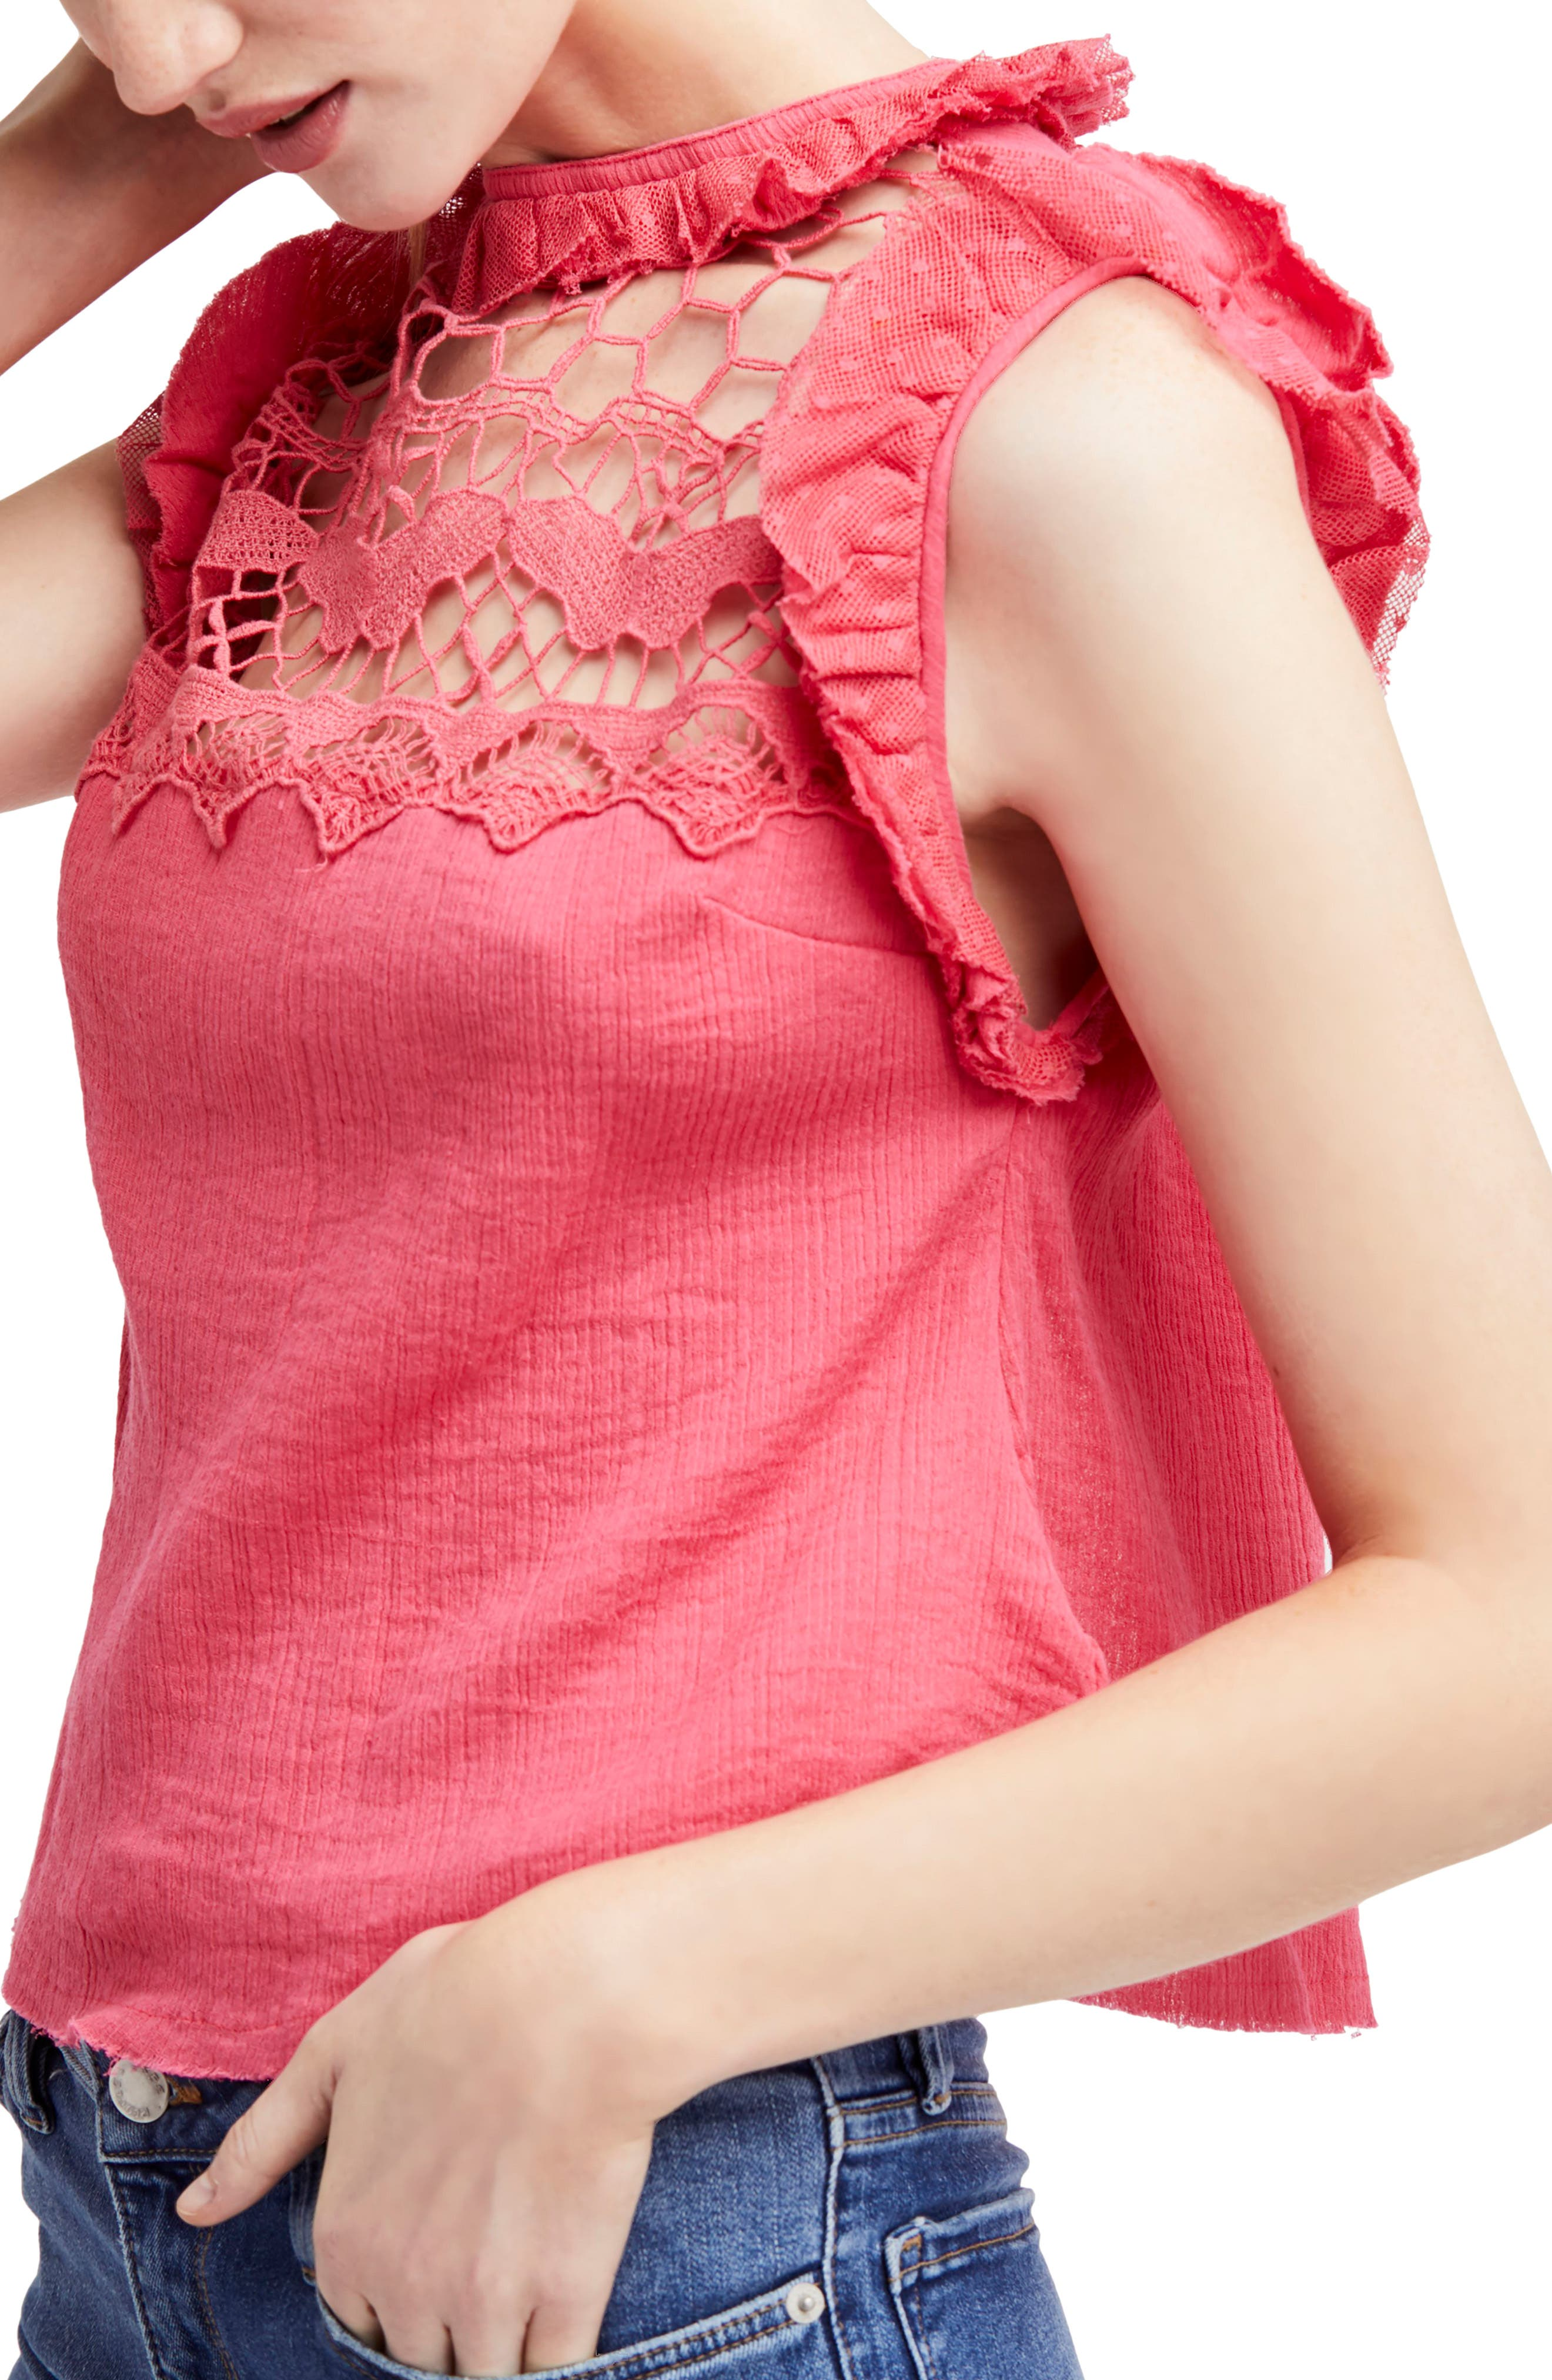 Simply Smiles Crochet Top,                         Main,                         color, Red